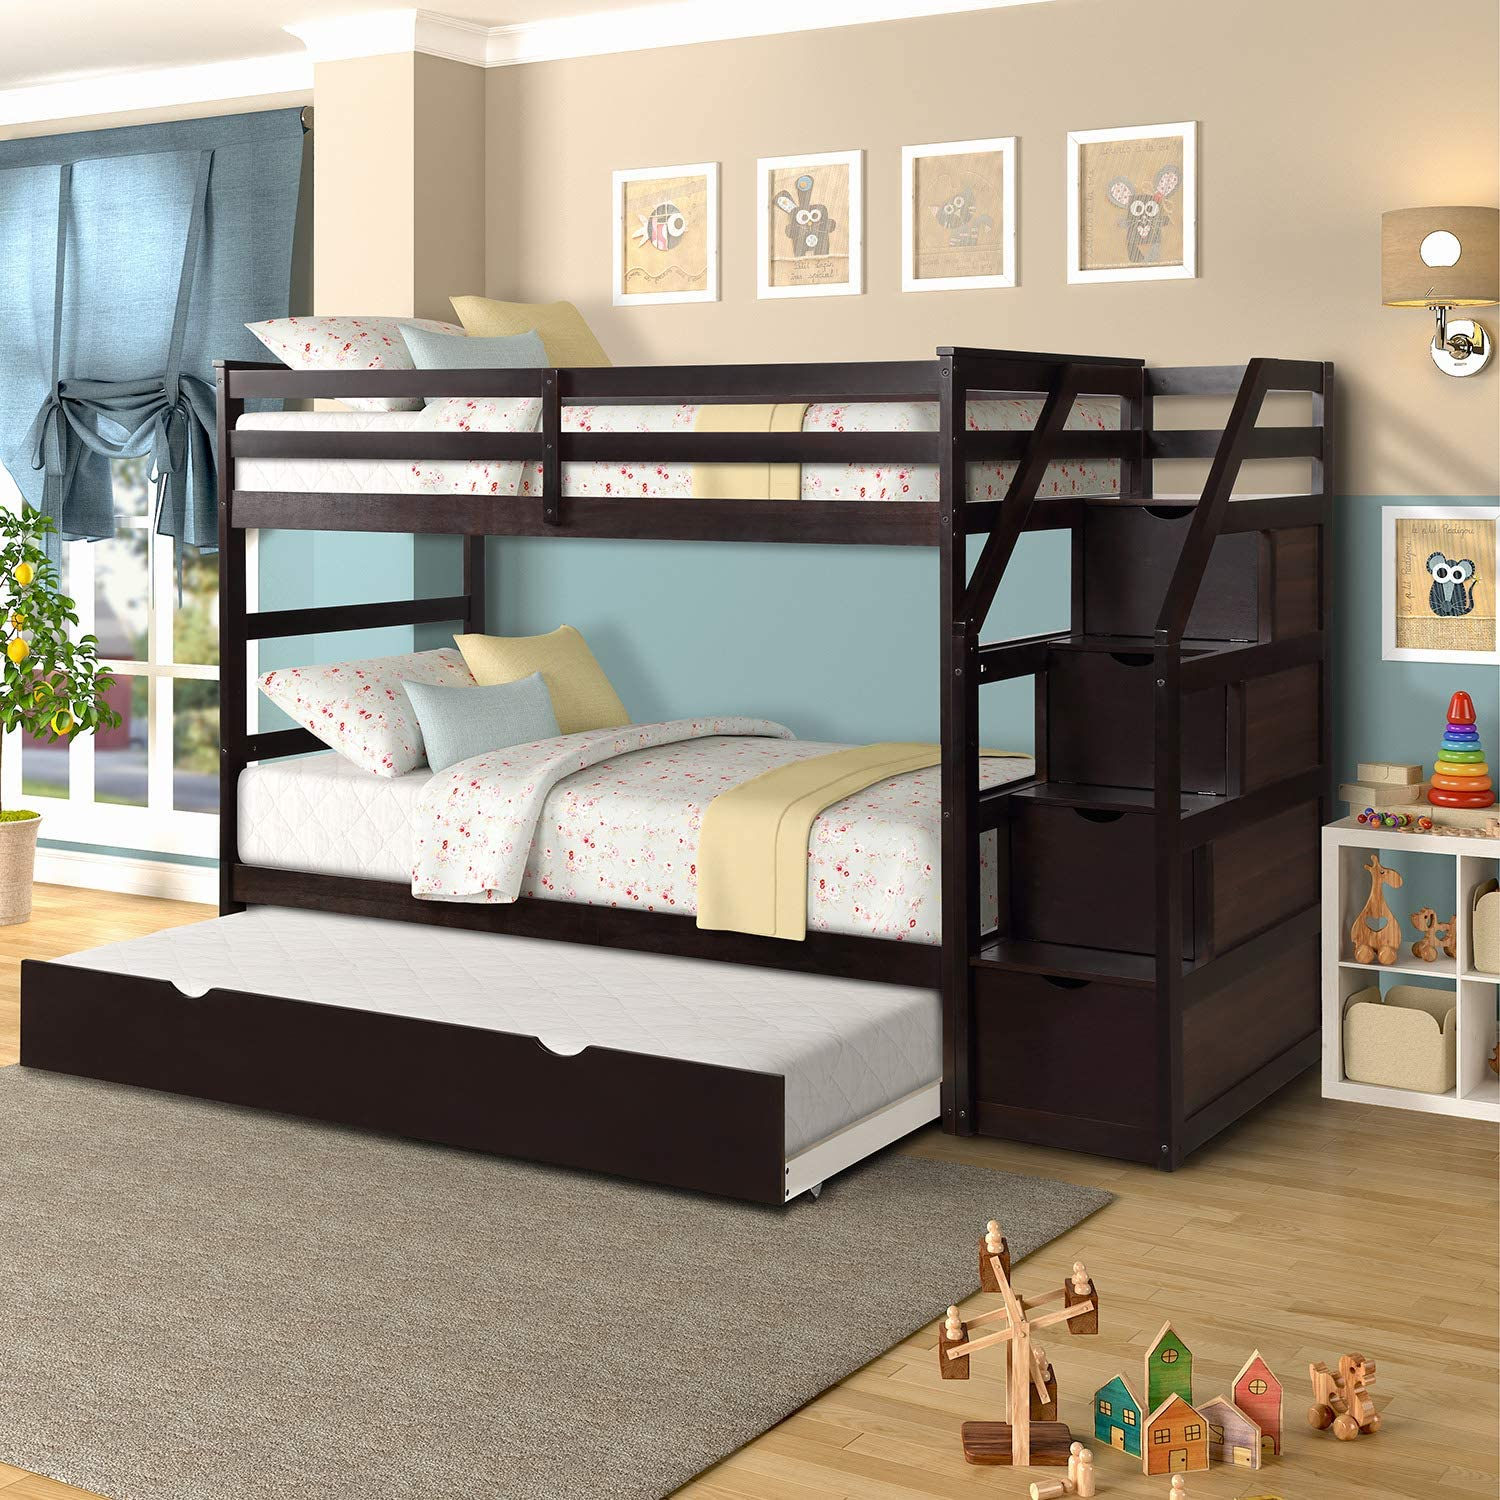 Twin-Over-Twin Trundle Bunk Bed 3 in 1 Bunk Bed with 4 Storage Drawers, Espresso